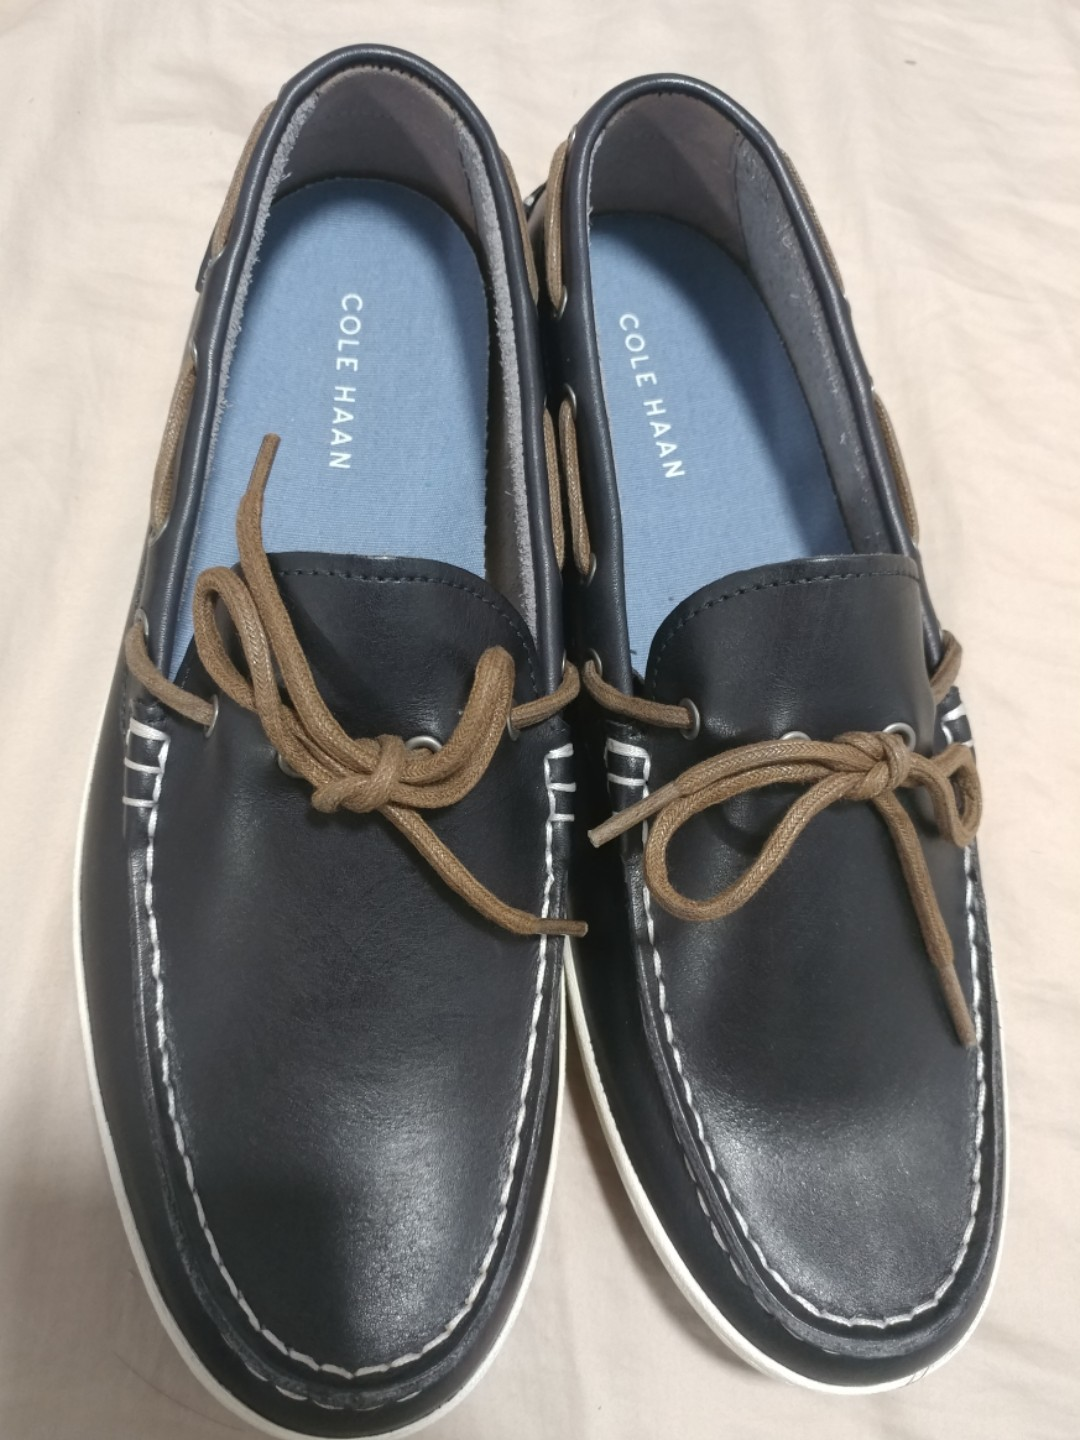 a7b1d451304 Cole Haan Boat Shoes Navy Blue Mens Size 11